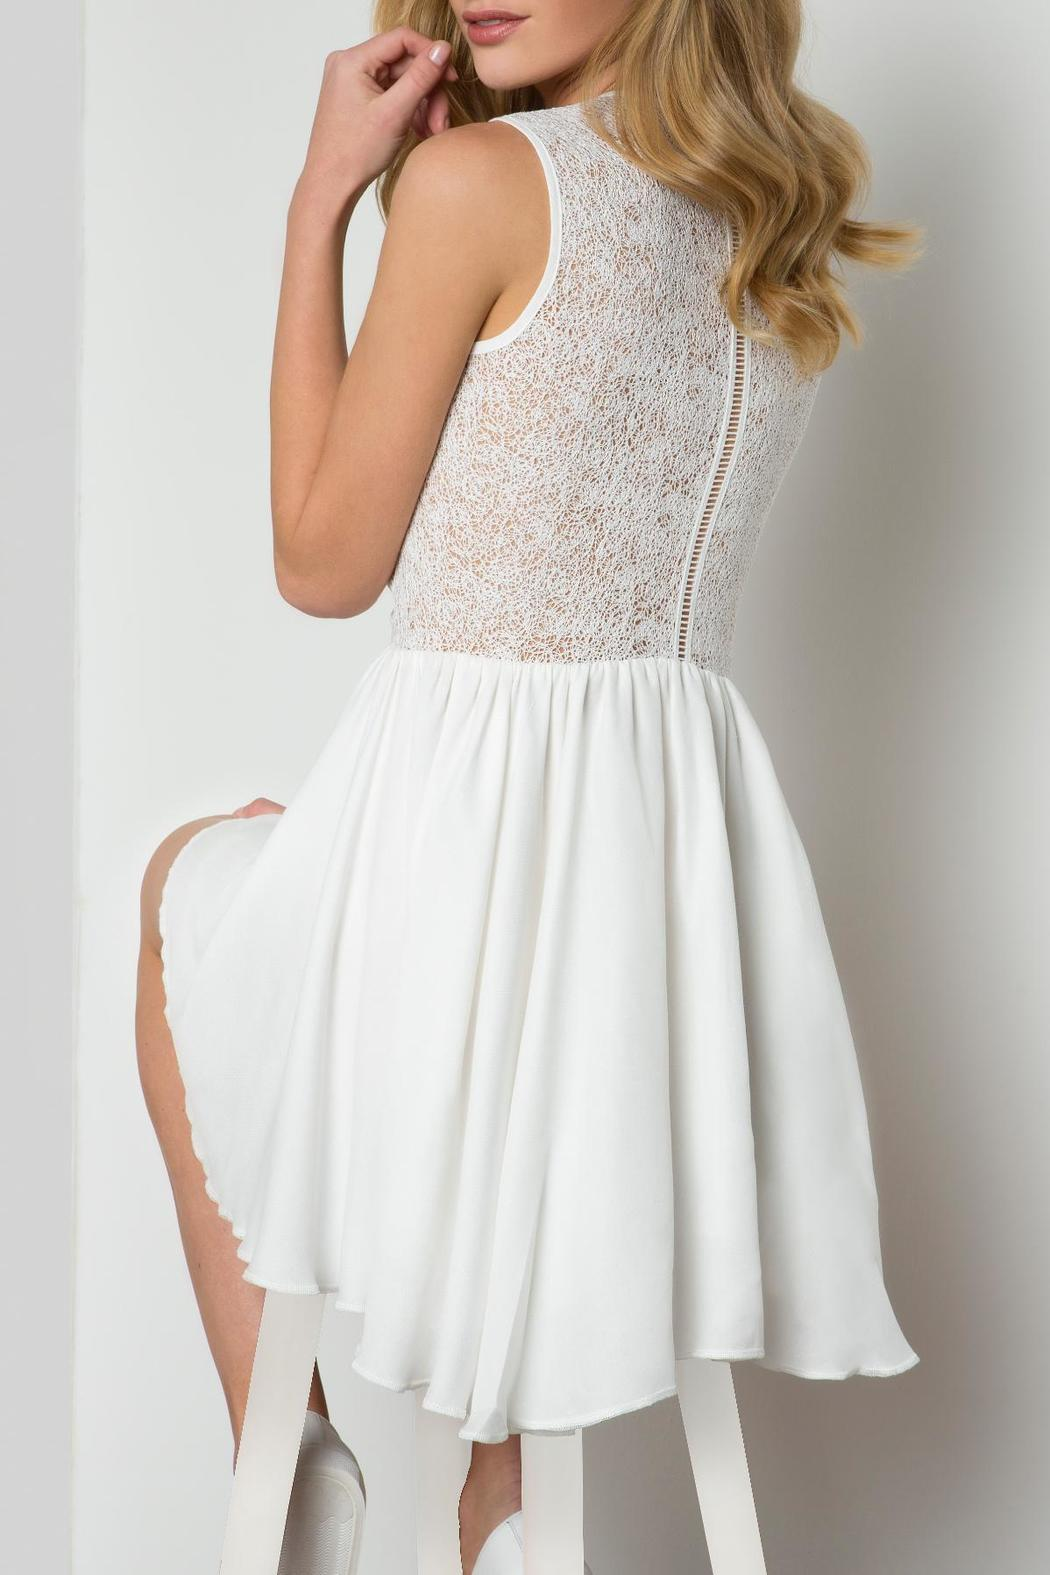 Urban Touch Crossover Skater Dress - Side Cropped Image